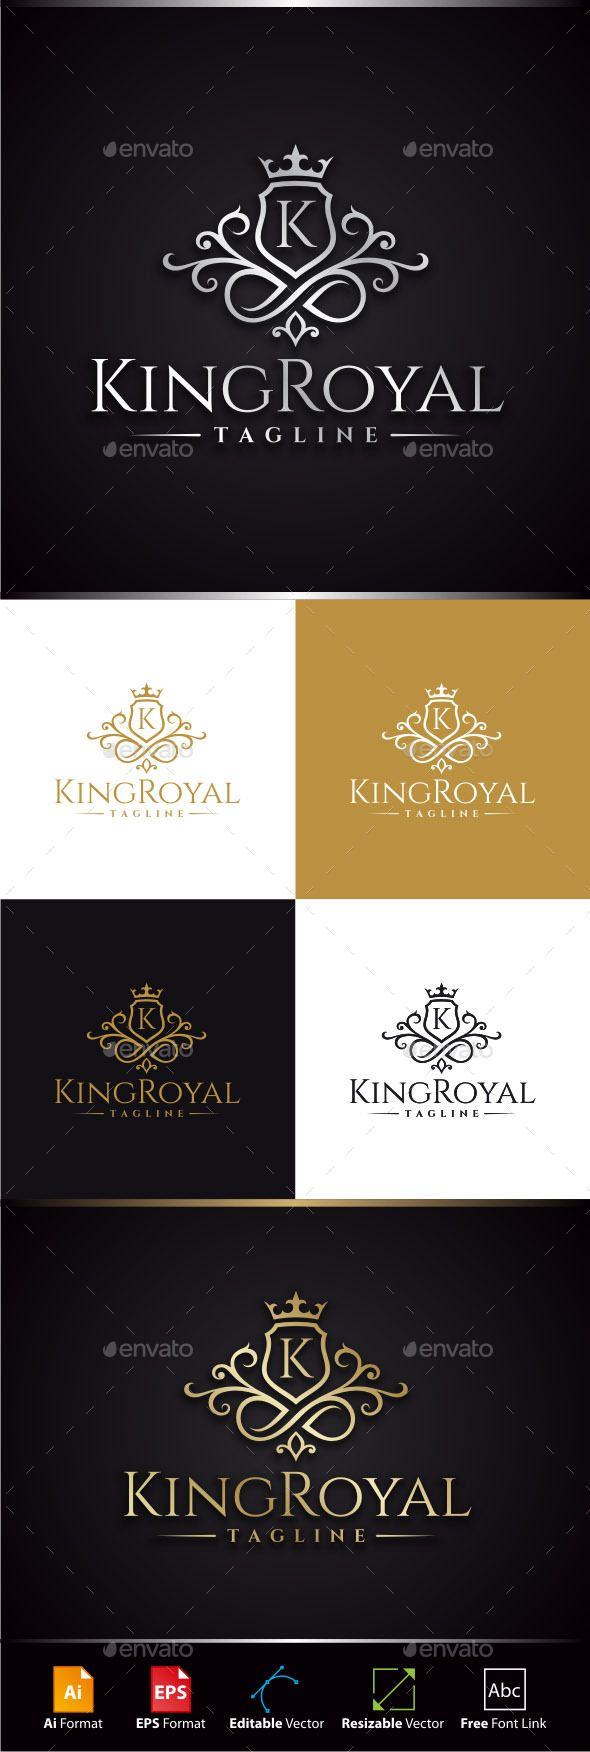 King Royal Logo Template #design #logo Download: http://graphicriver.net/item/king-royal-logo/11446600?ref=ksioks